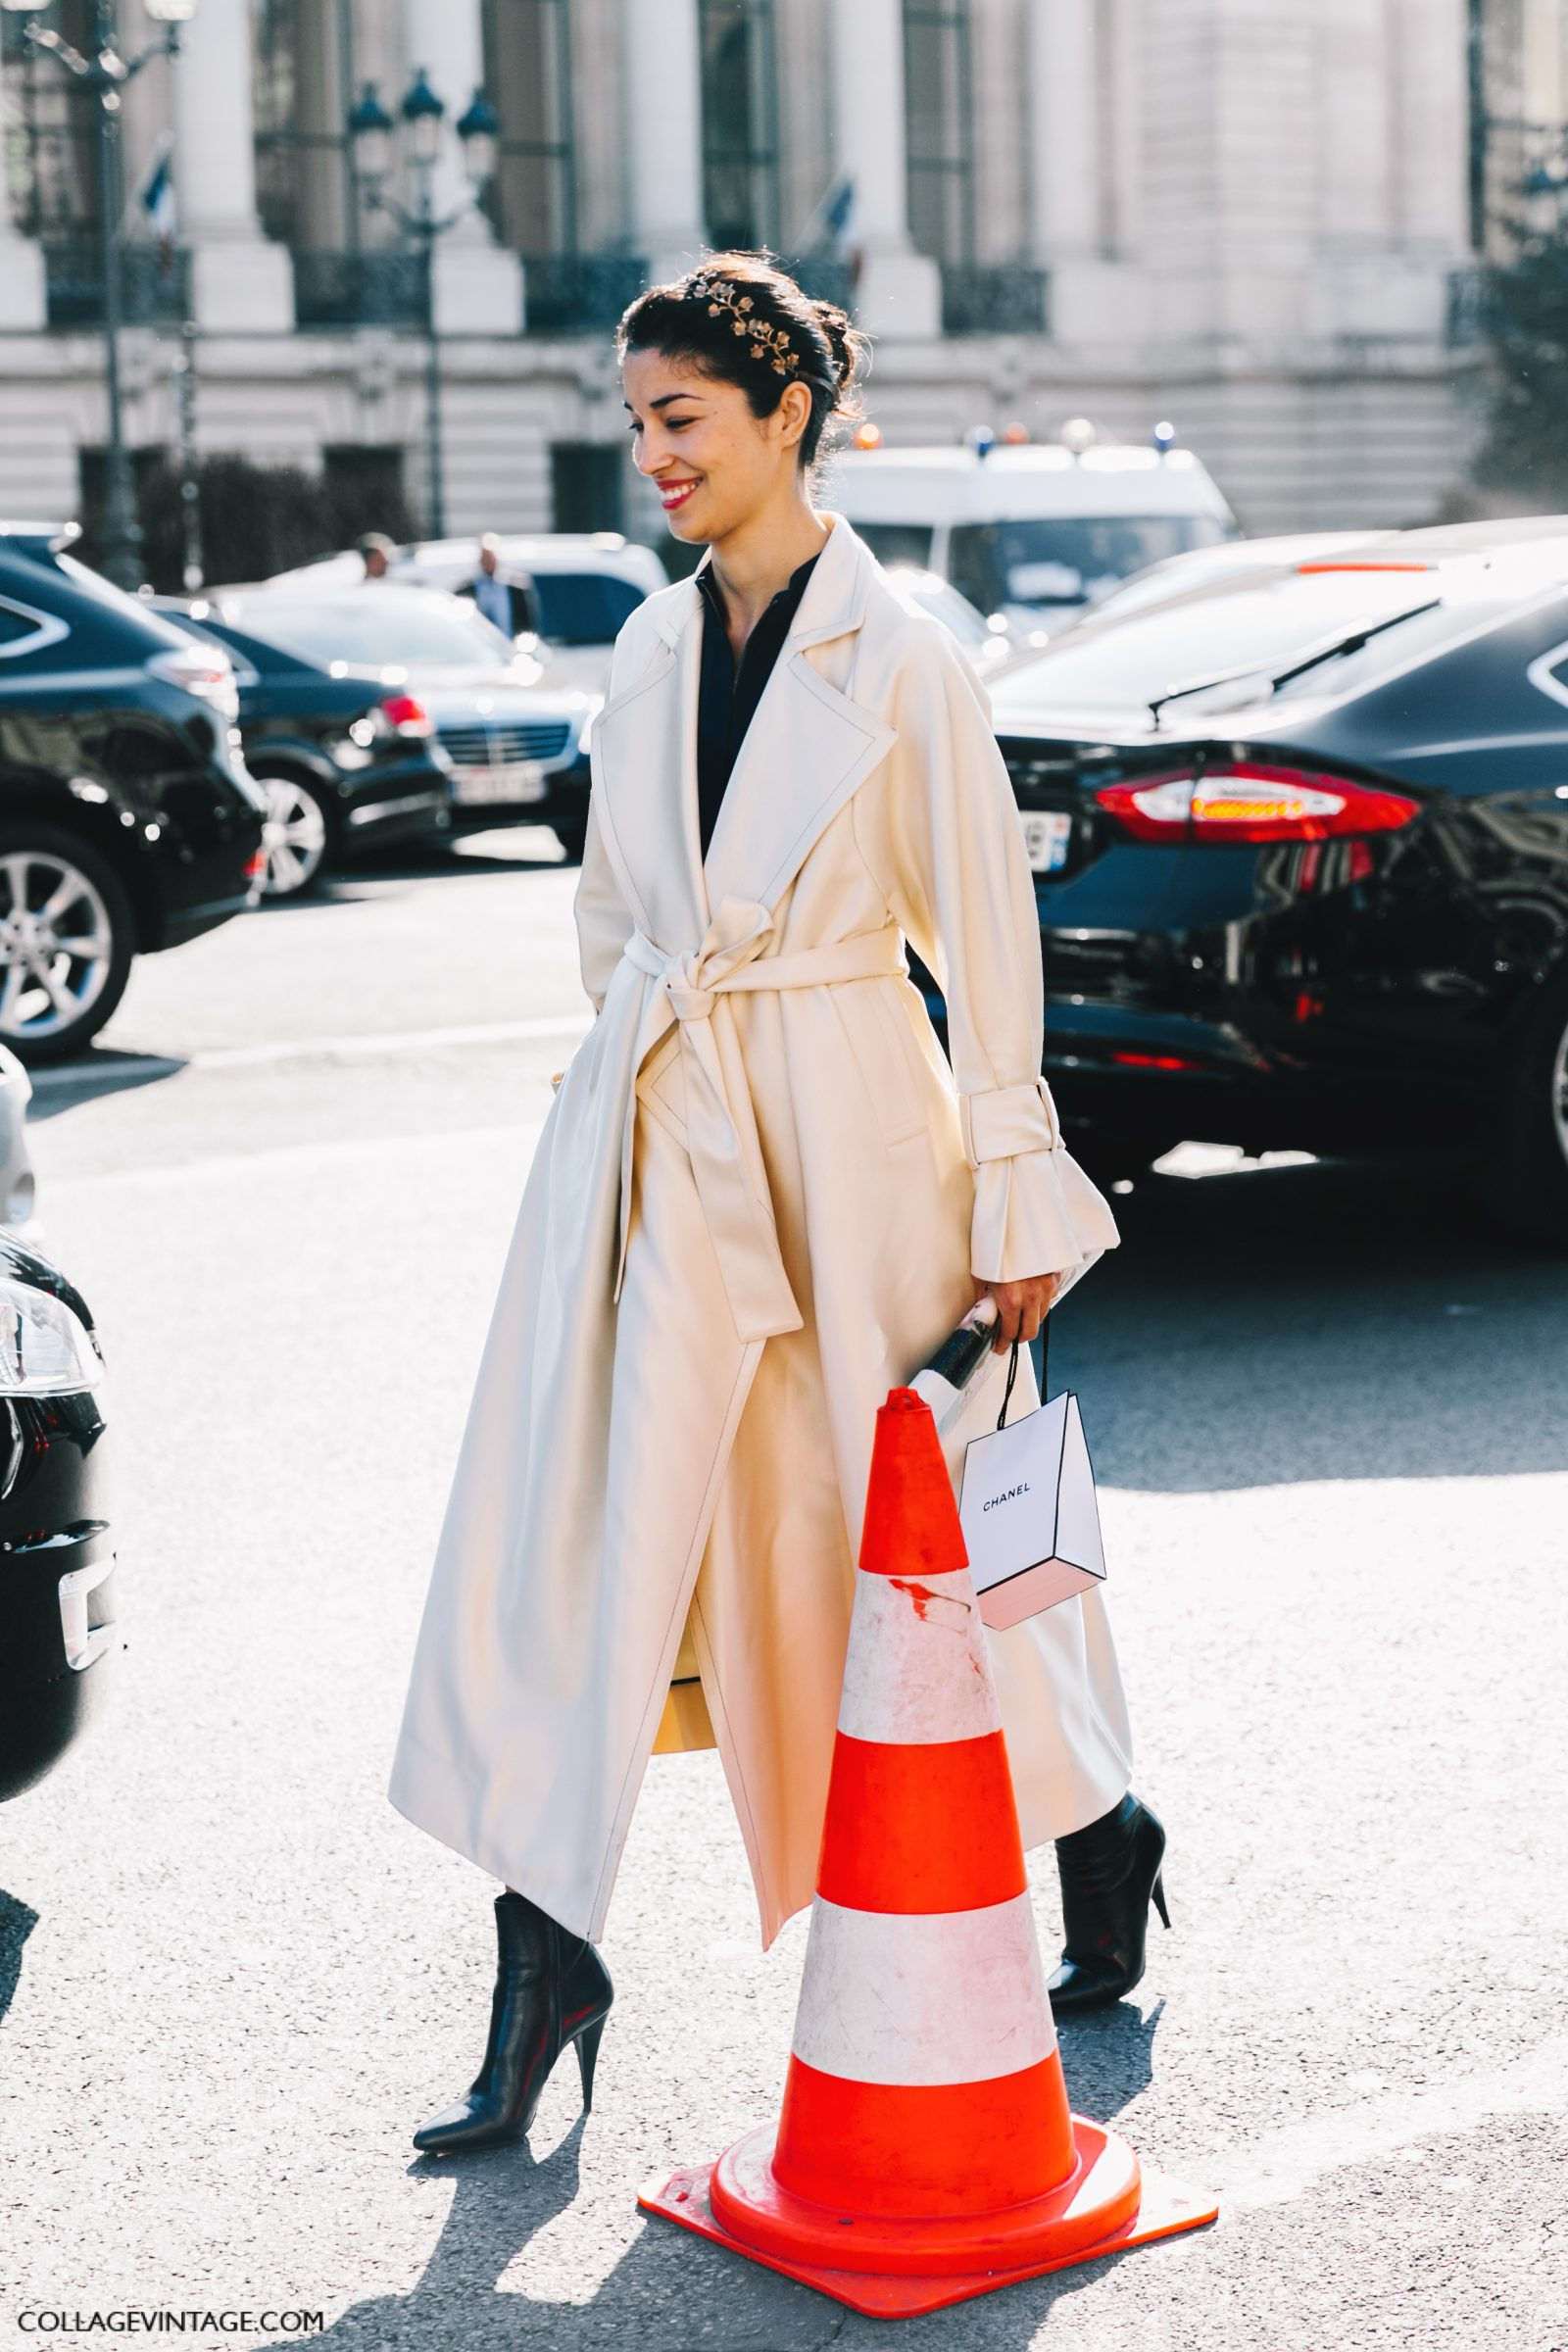 pfw-paris_fashion_week_ss17-street_style-outfits-collage_vintage-chanel-ellery-50